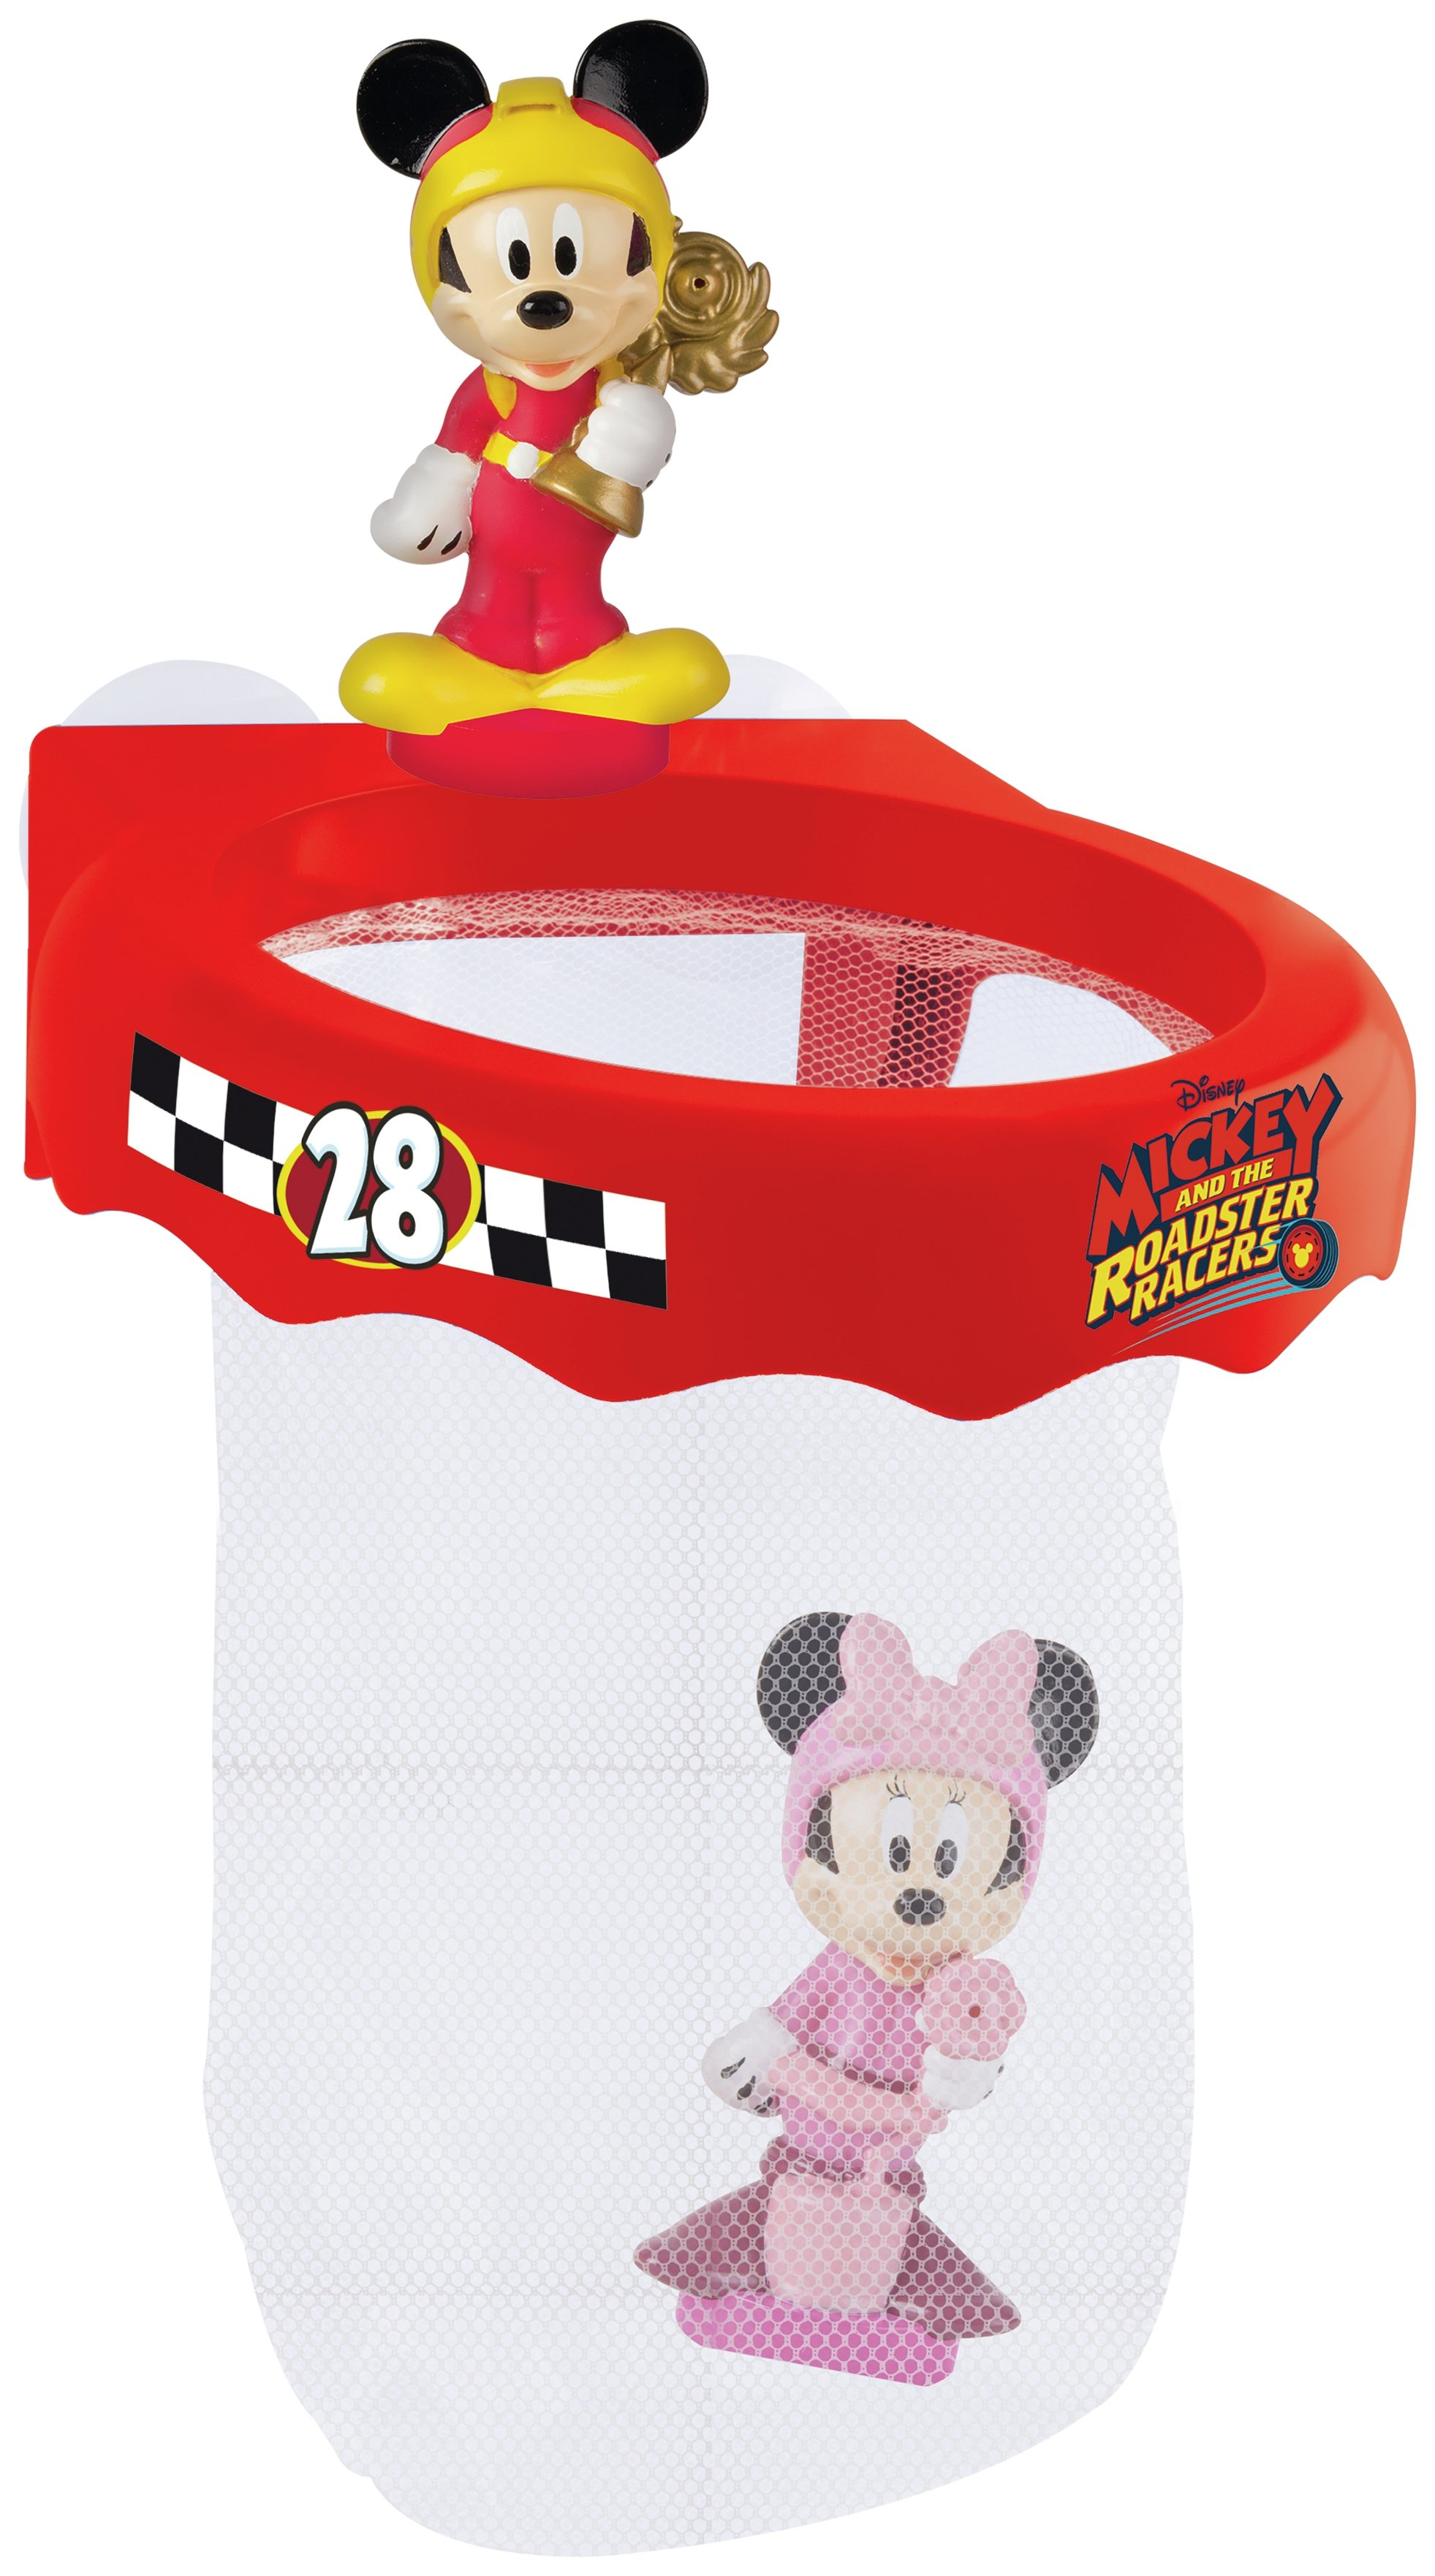 Mickey Roadster Racers Bath Time Fun